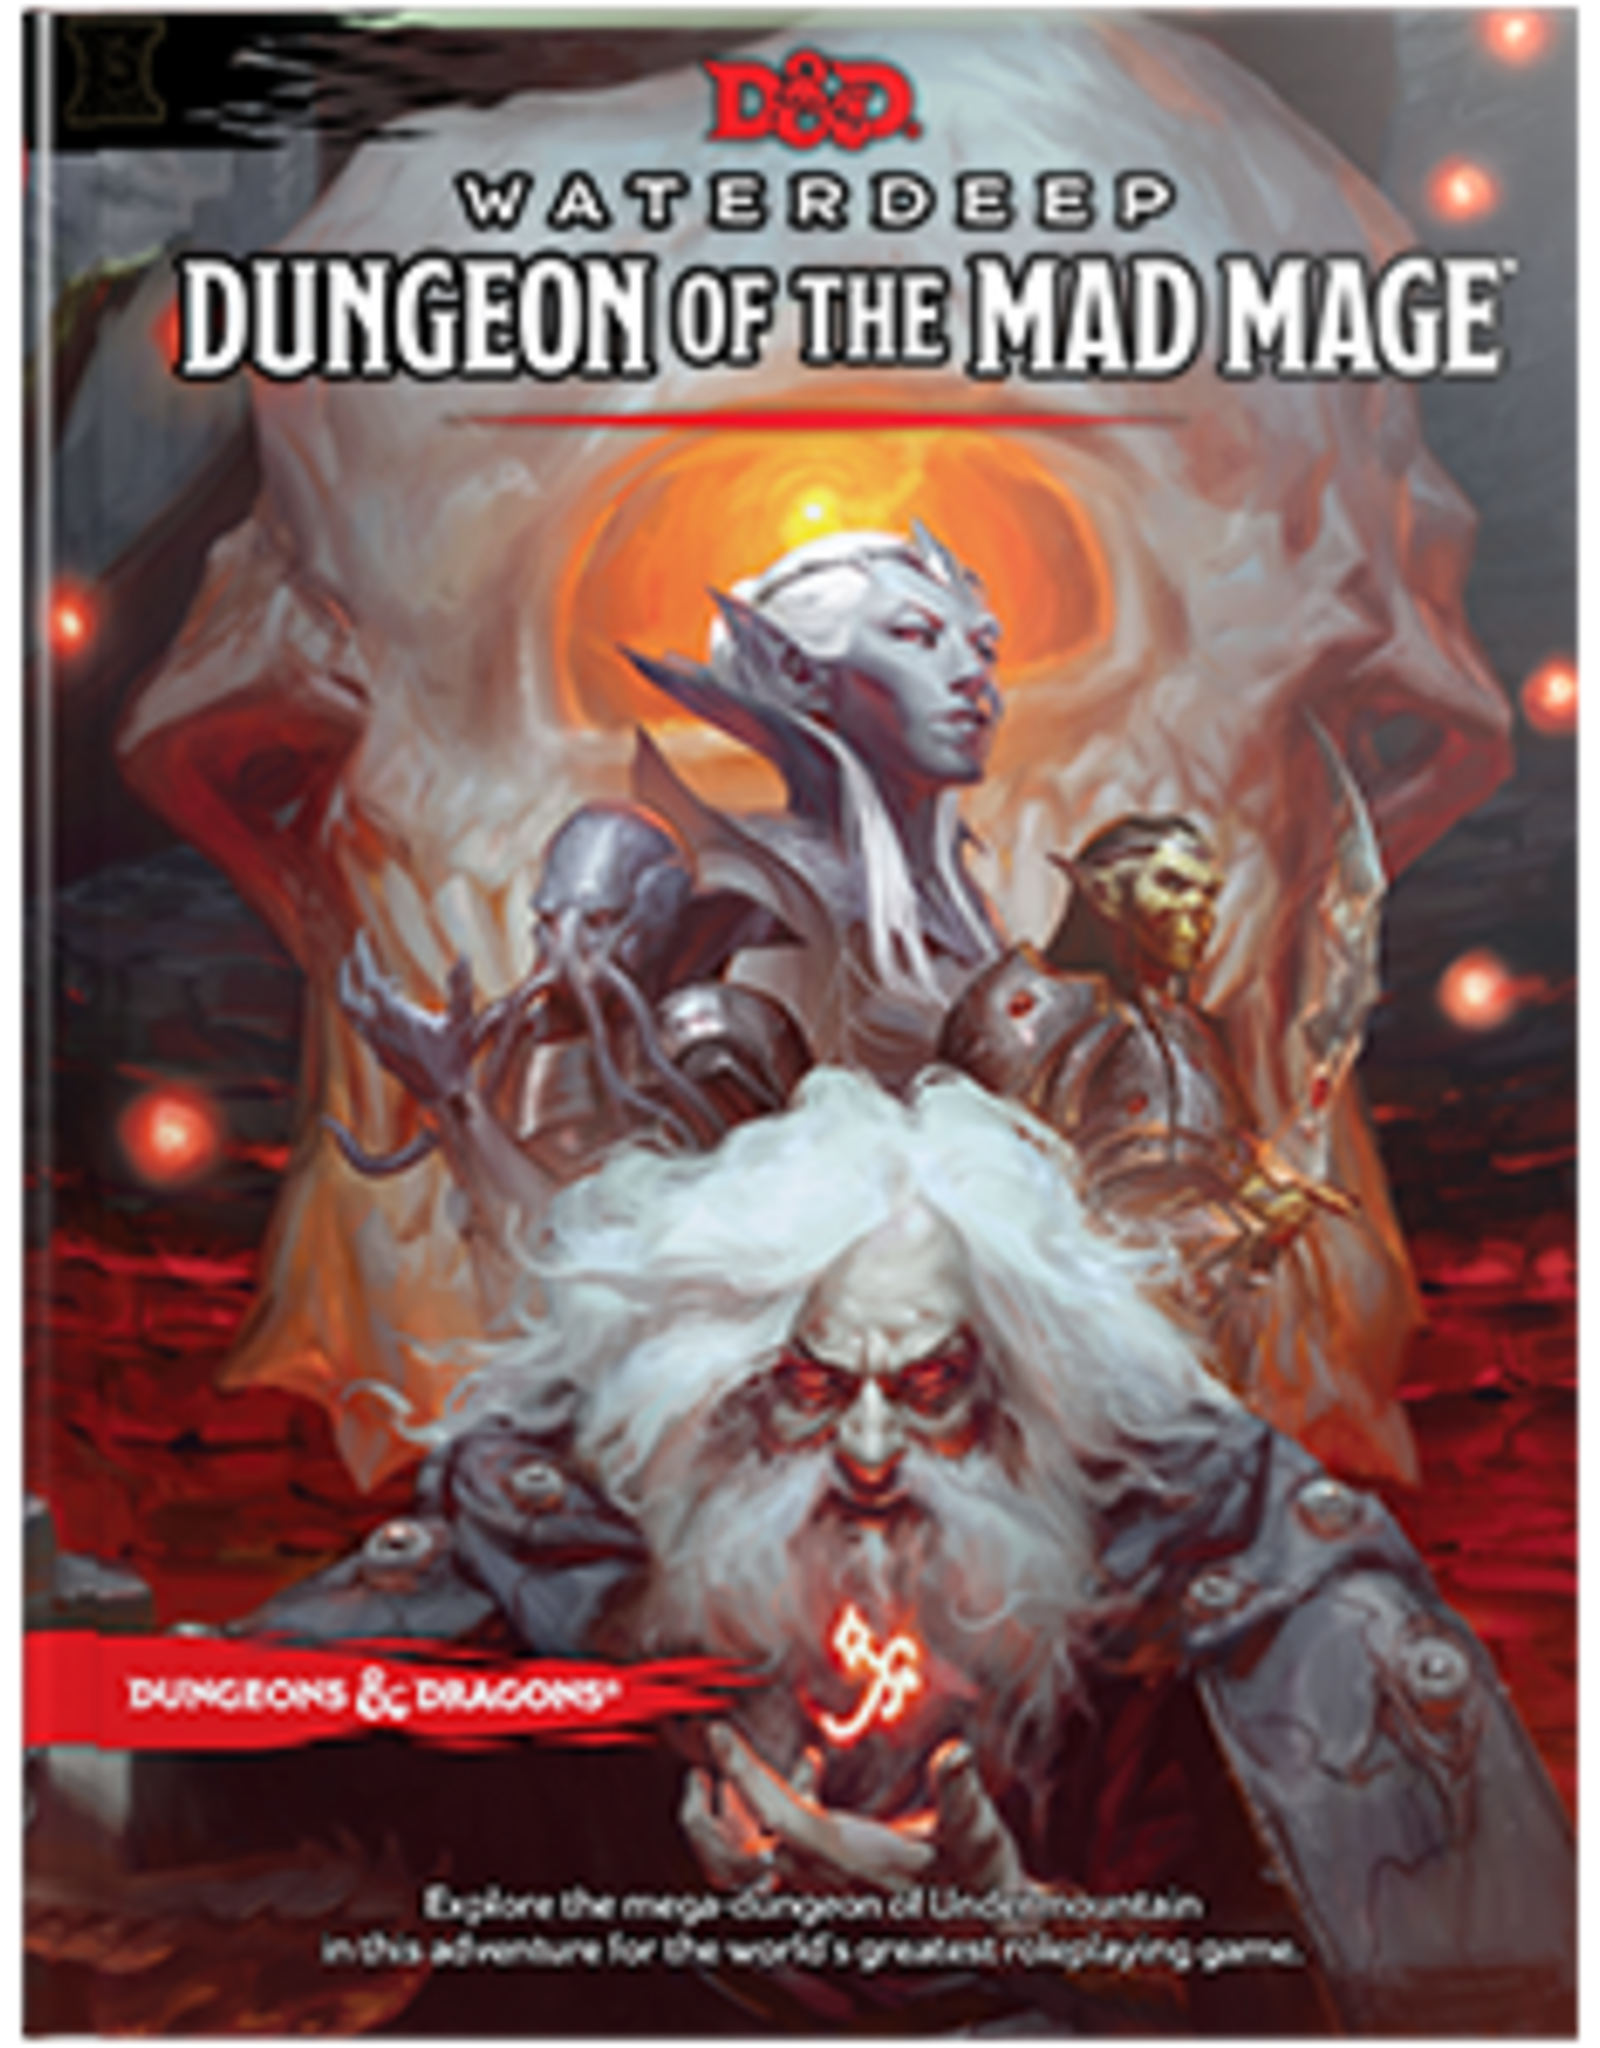 Wizards of the Coast Dungeons & Dragons: Dungeon of the Mad Mage